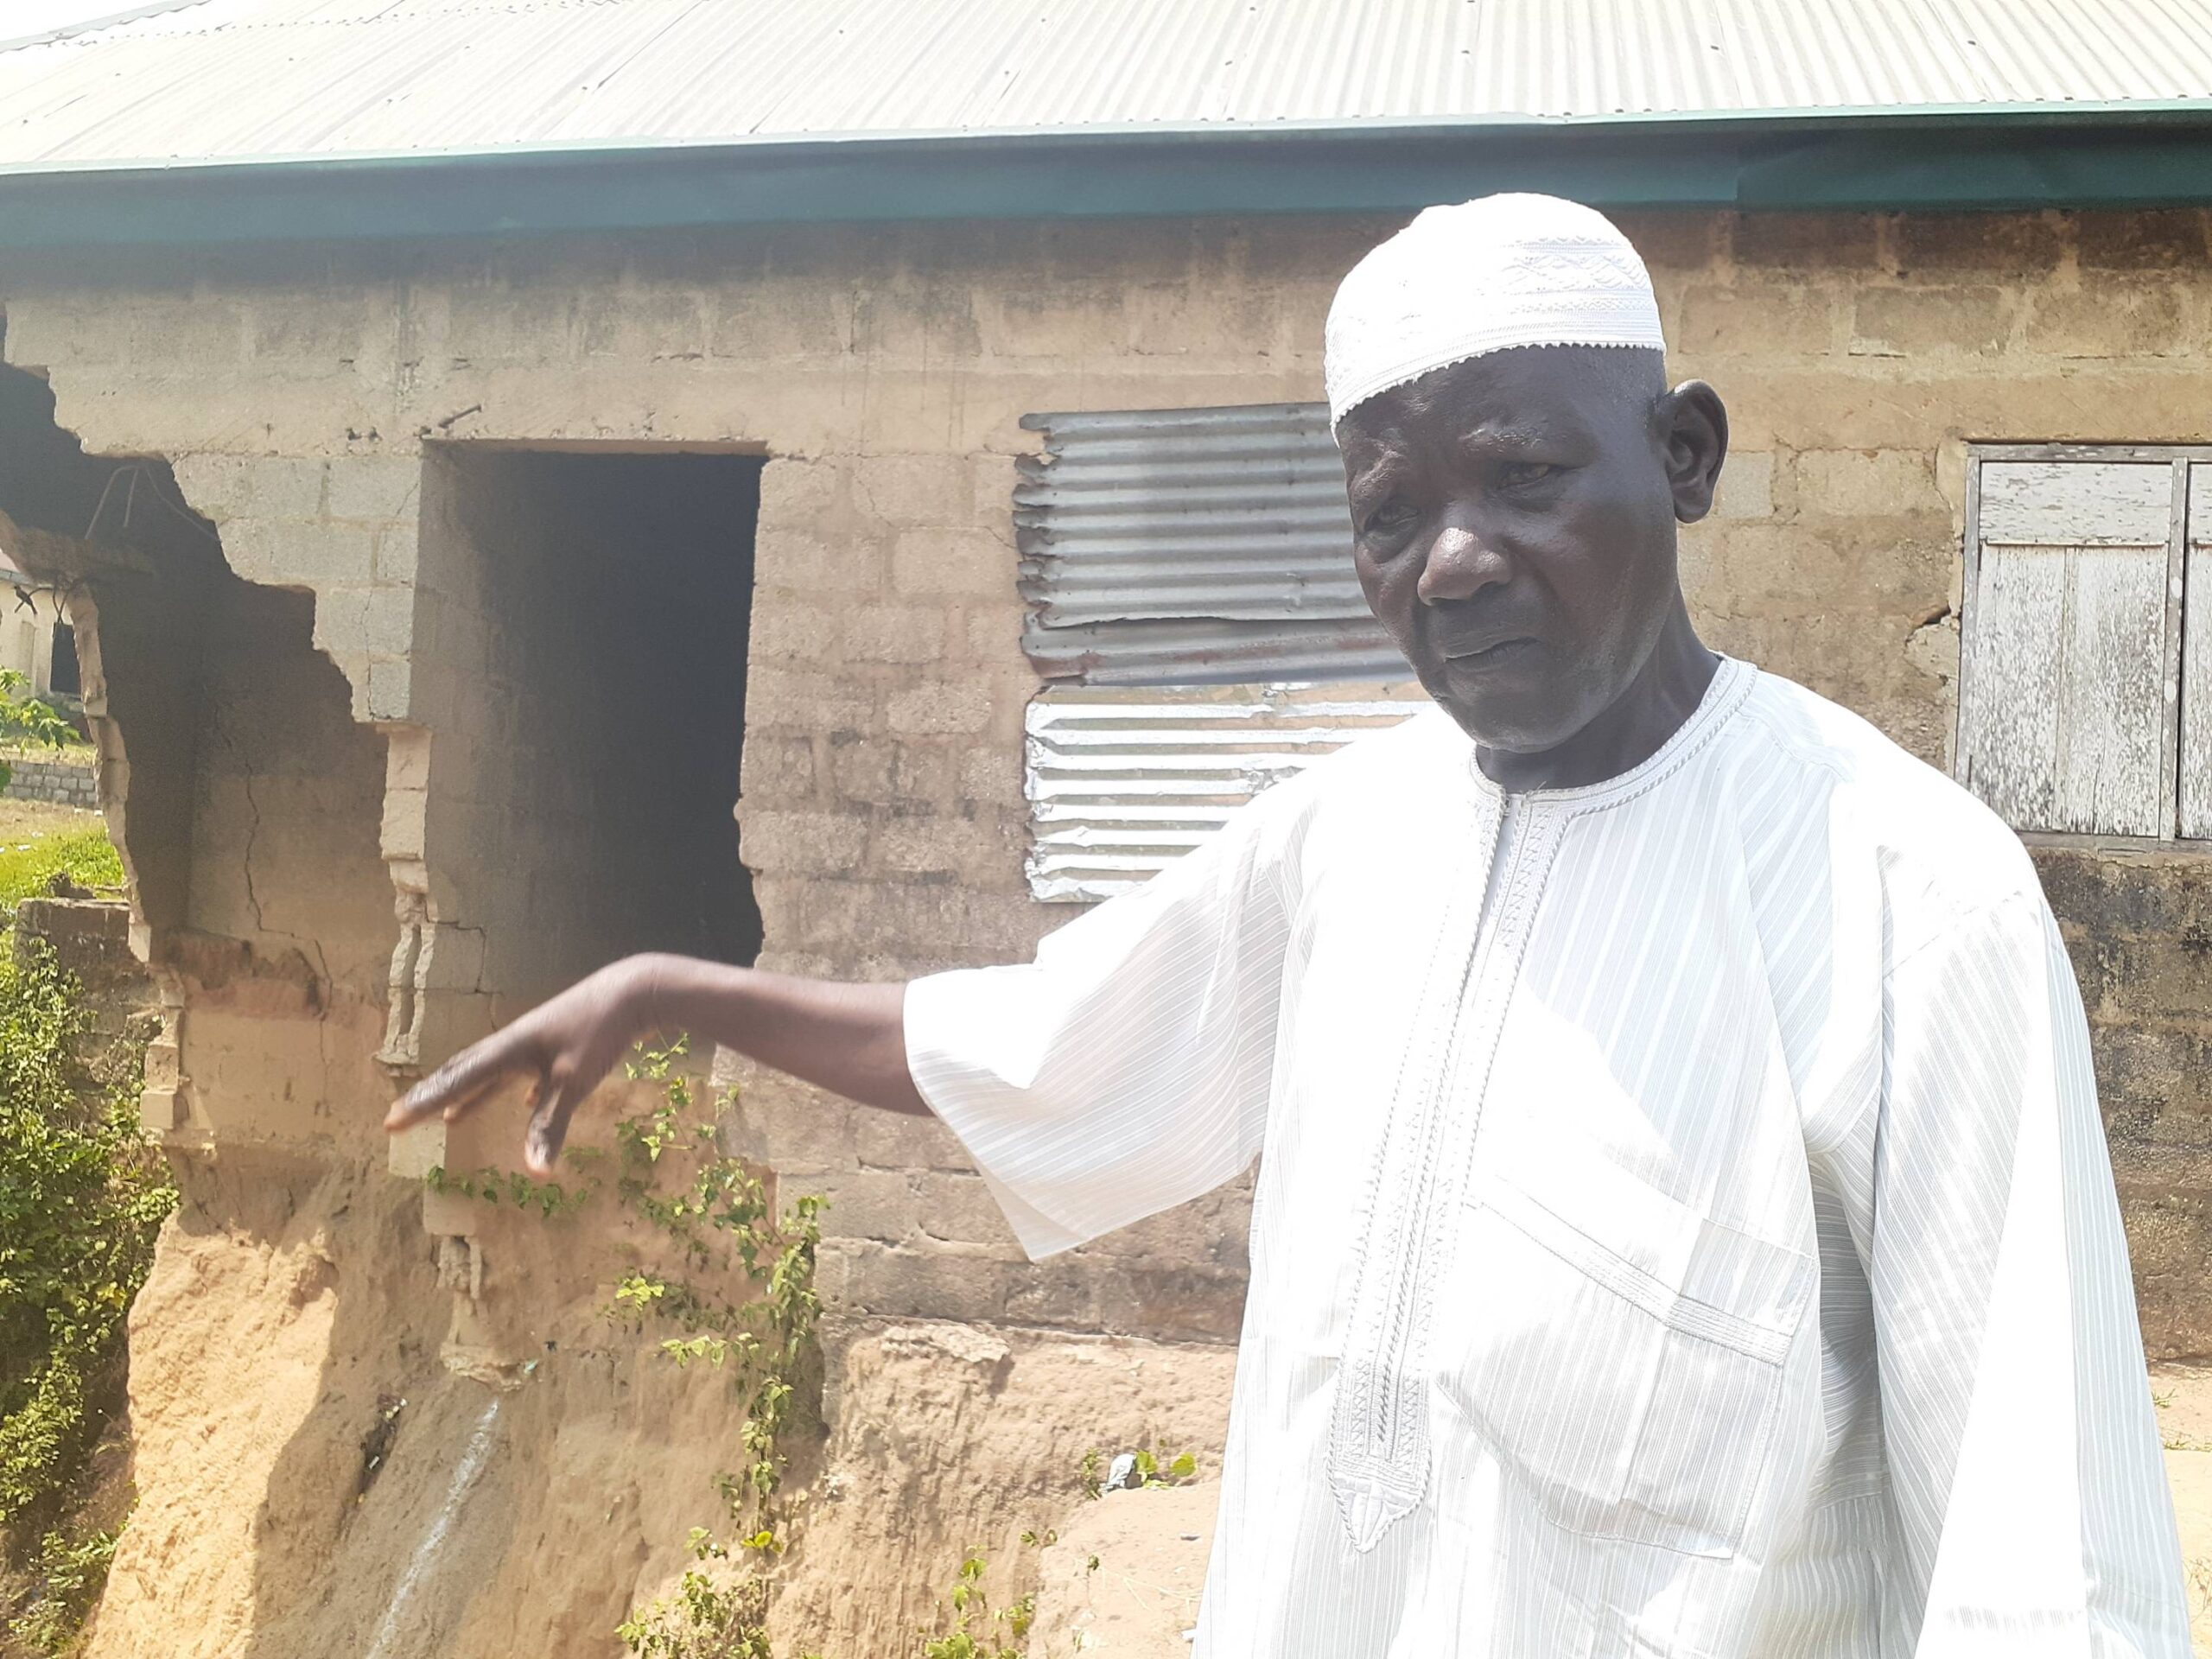 Heavy downpours causing erosion, threatens homes and livelihoods in Nigeria